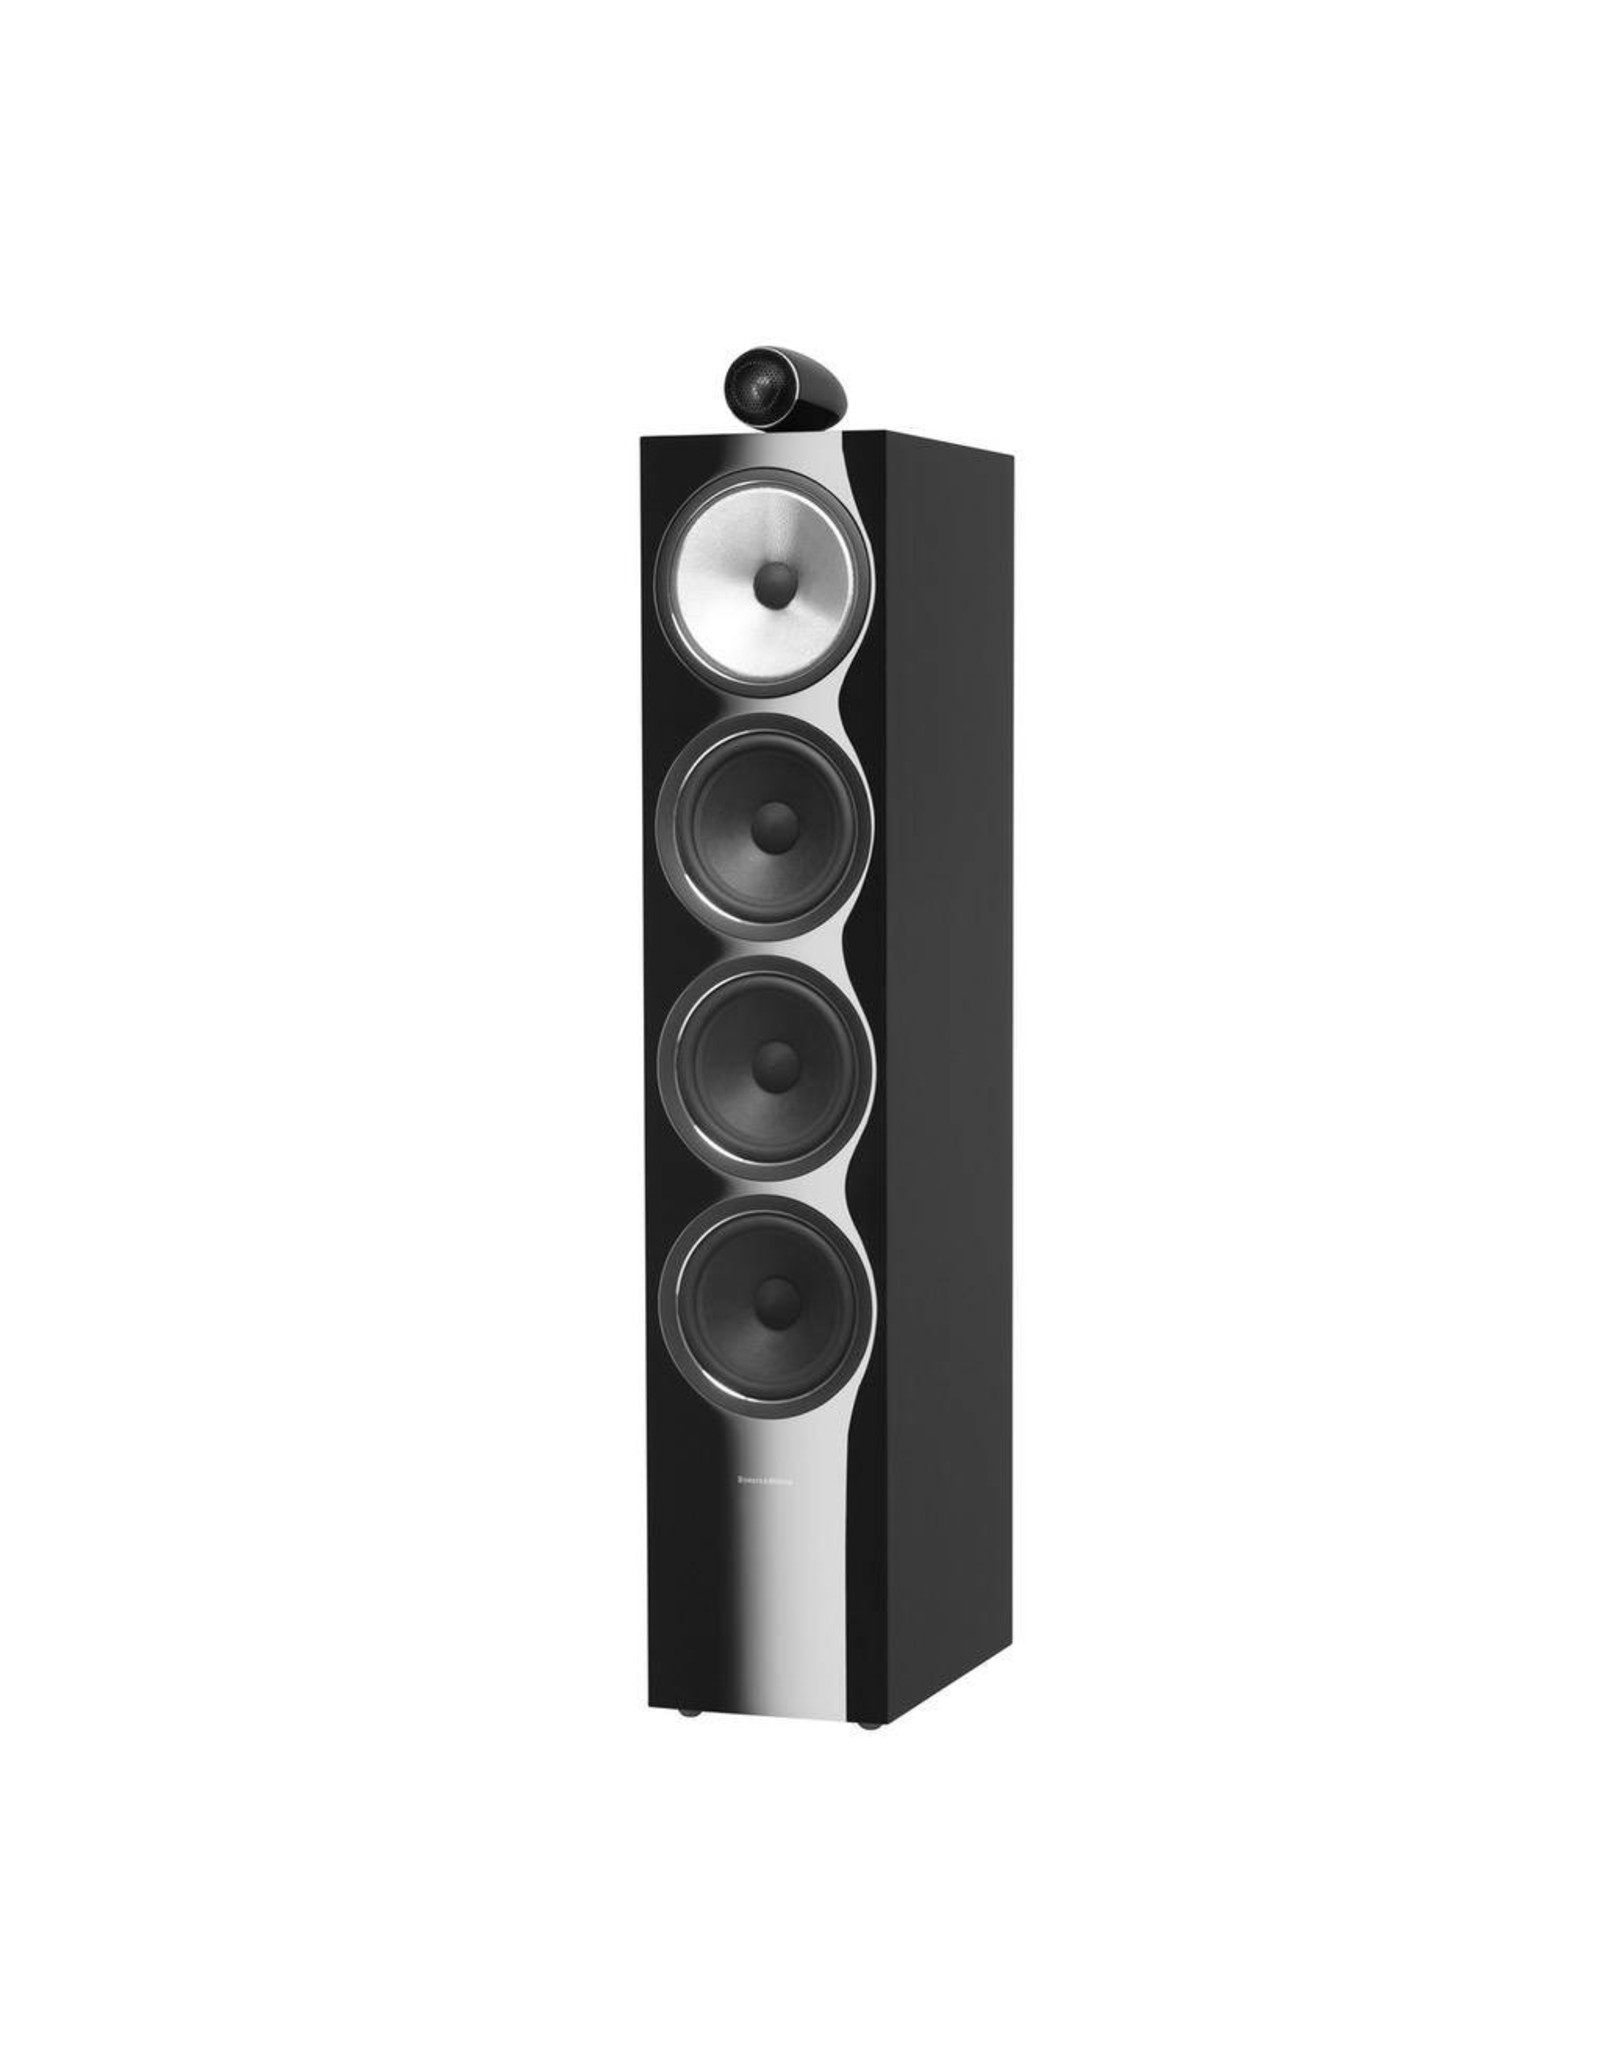 BOWERS & WILKINS 702 S2 Speakers